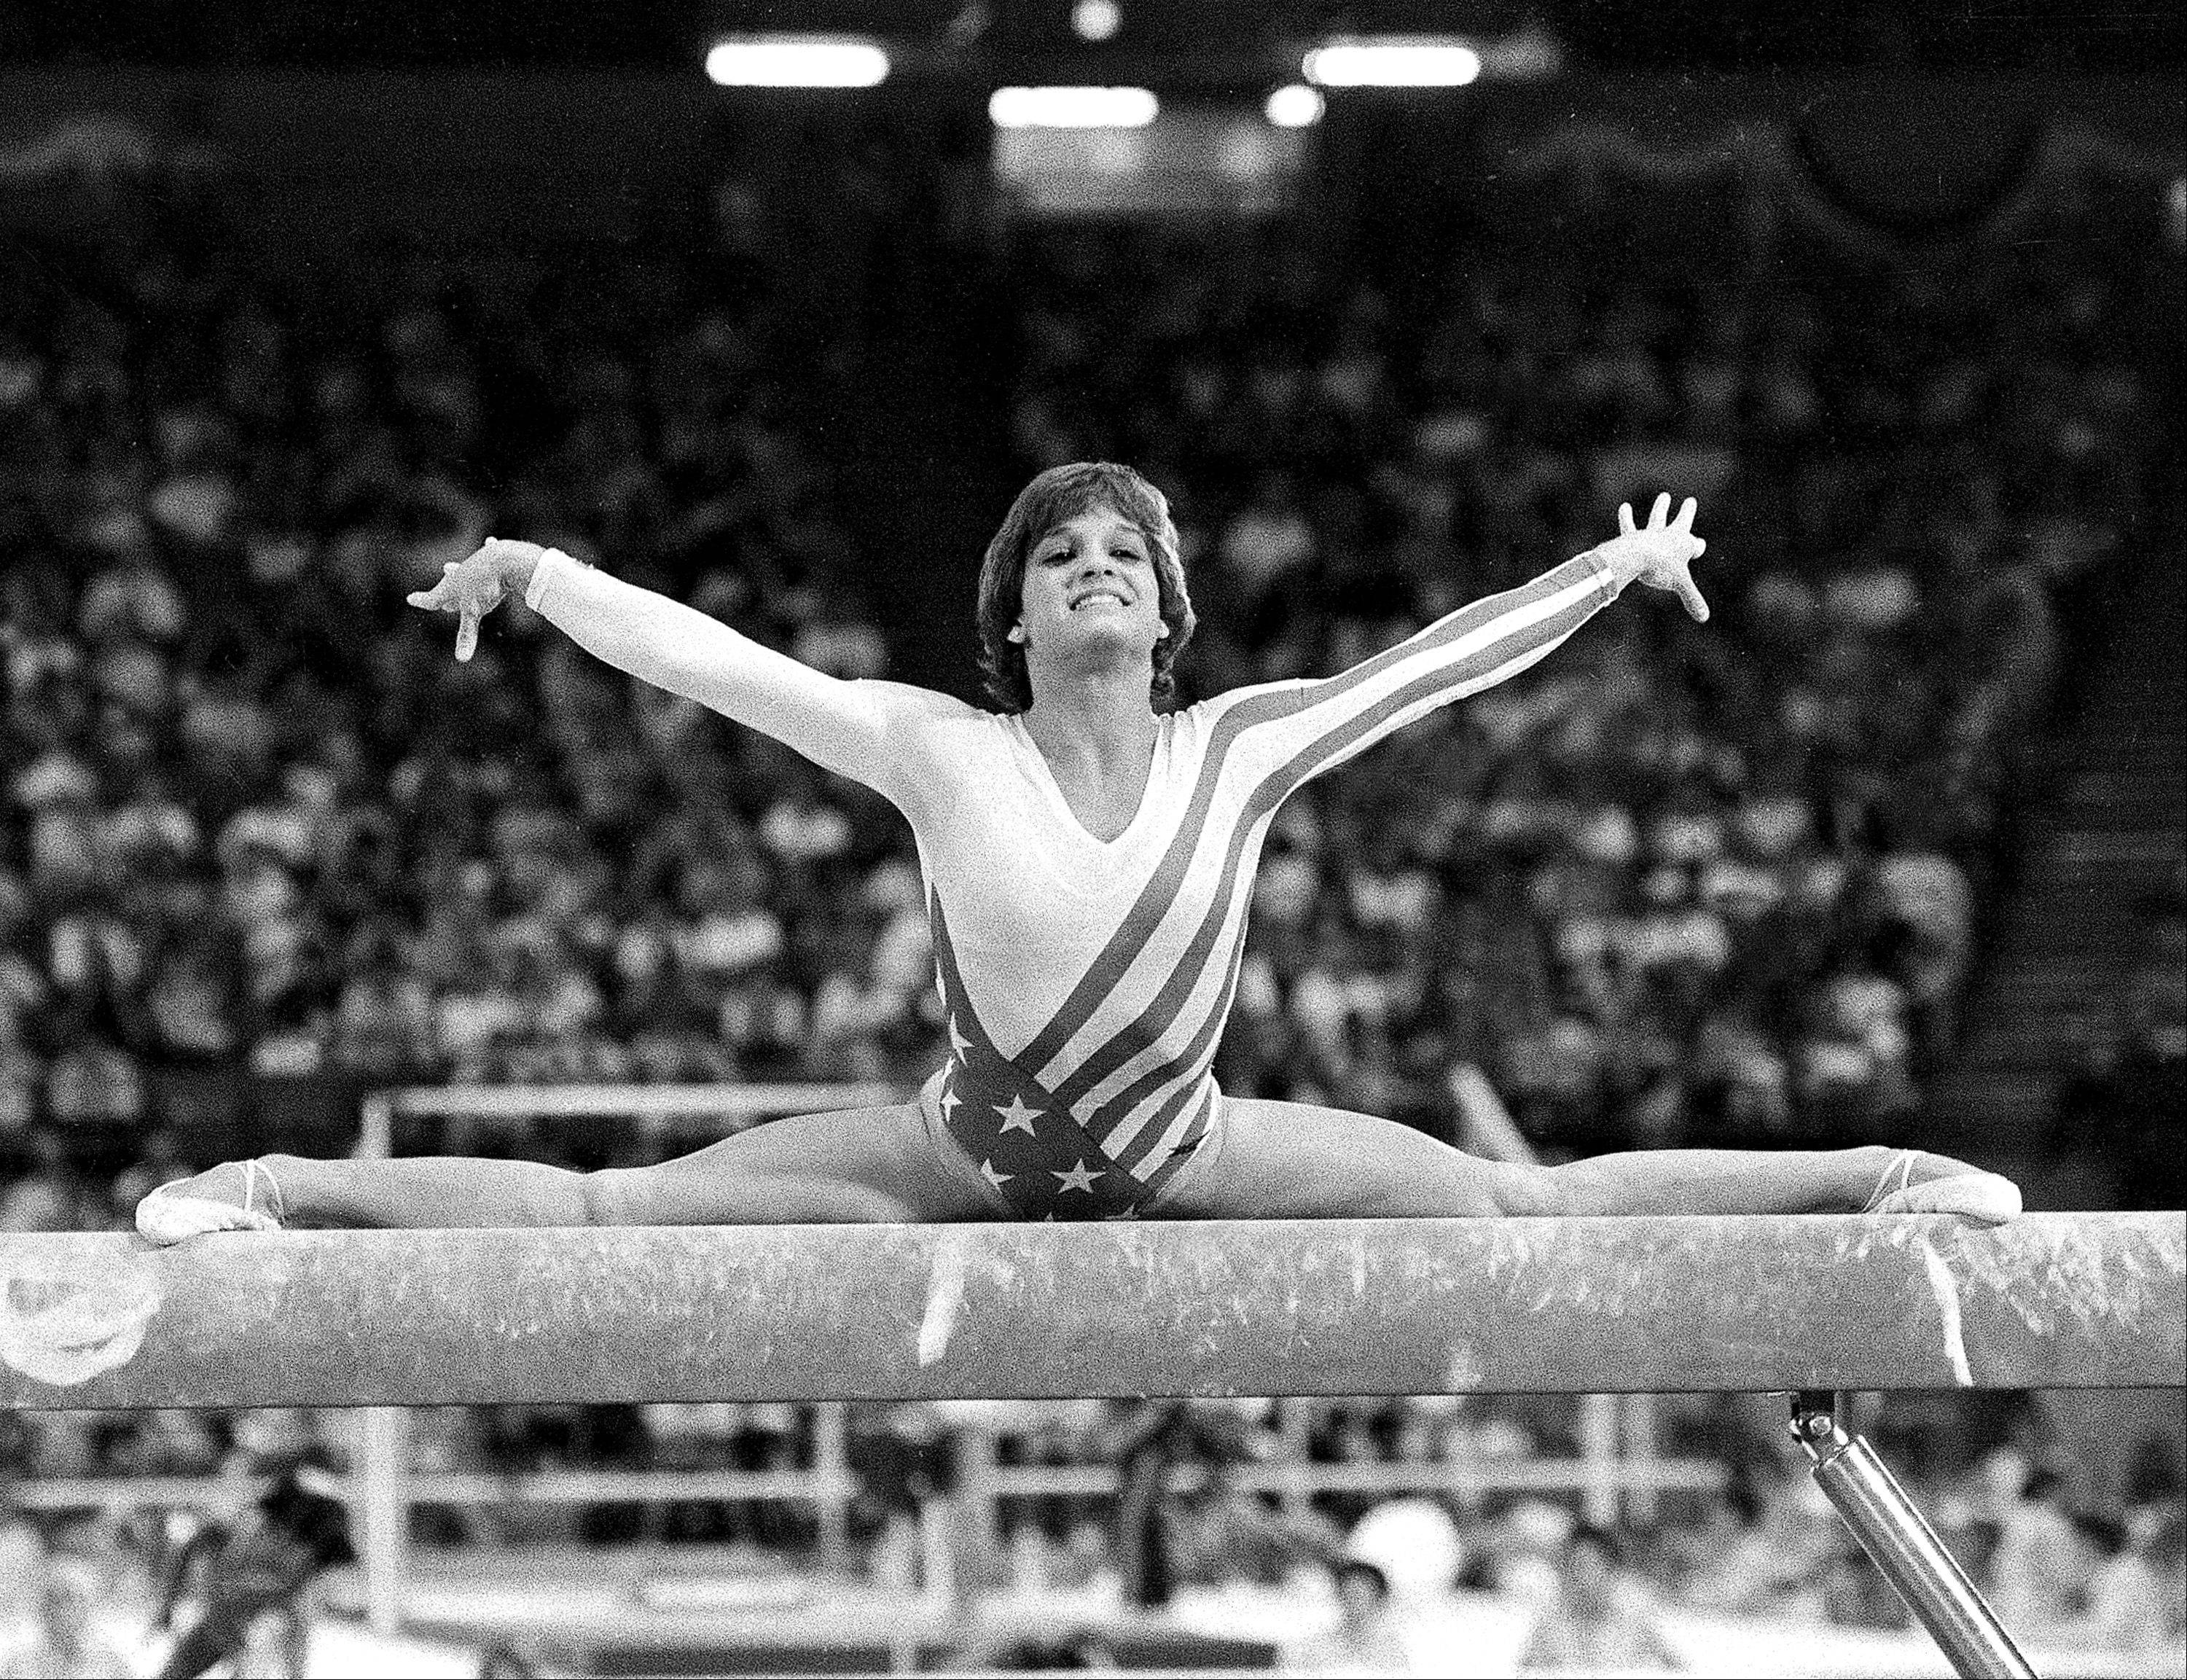 Mary Lou Retton, of the U.S.A., performs on the balance beam during the women's gymnastics individual all-around finals at the XXIII Summer Olympic Games in Los Angeles, Calif., on Aug. 3, 1984.